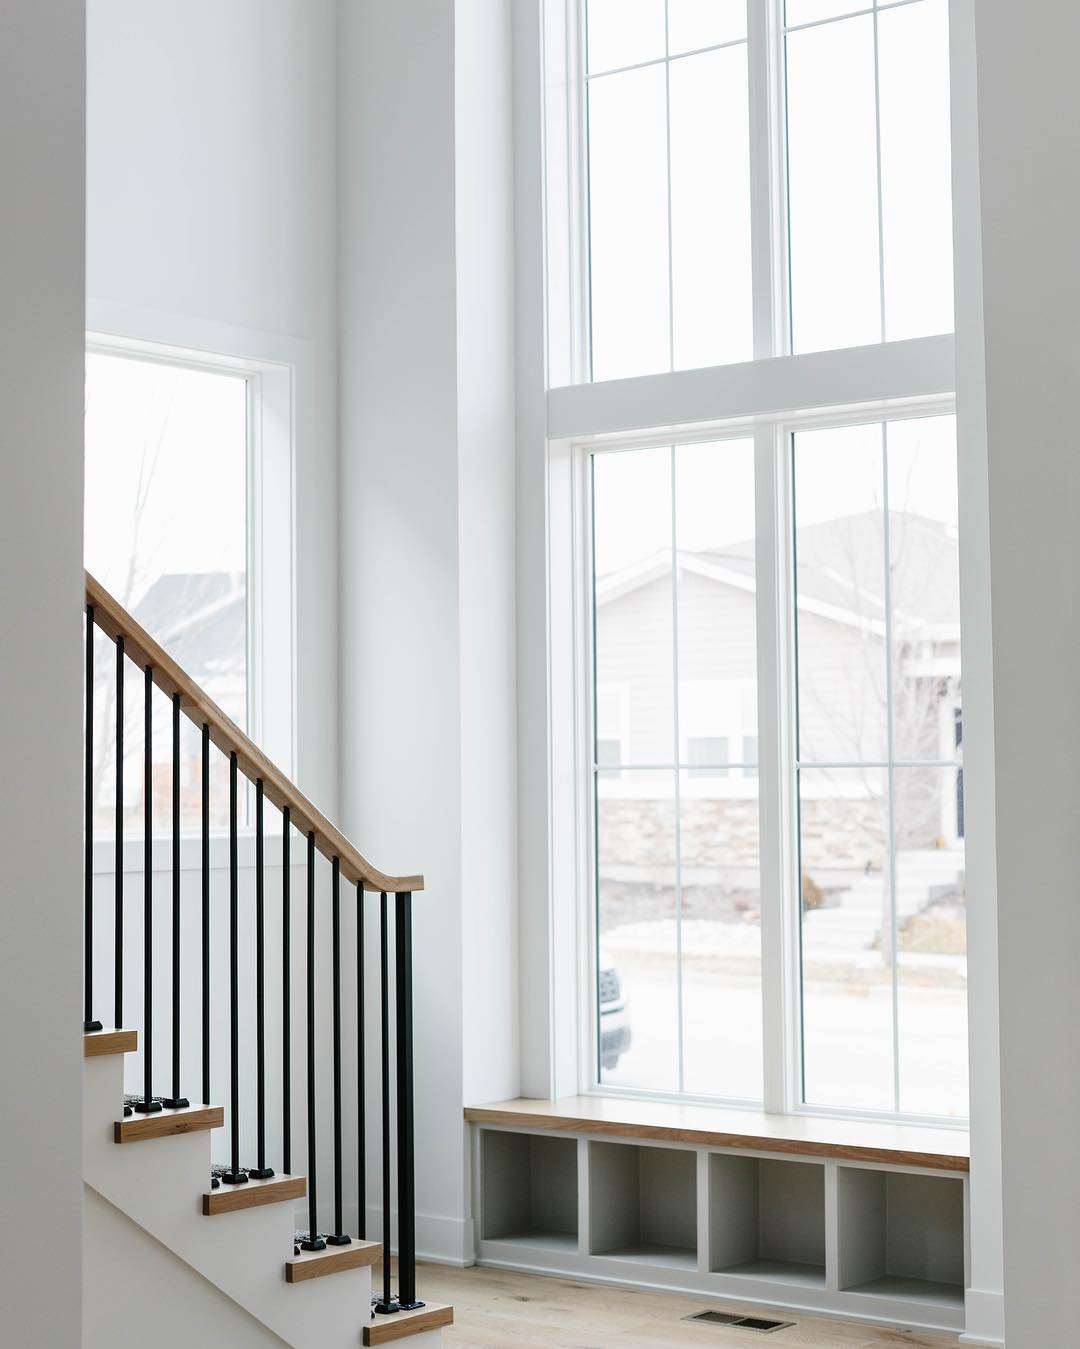 stacked picture windows with shoe cubbies underneath at the bottom of stairs